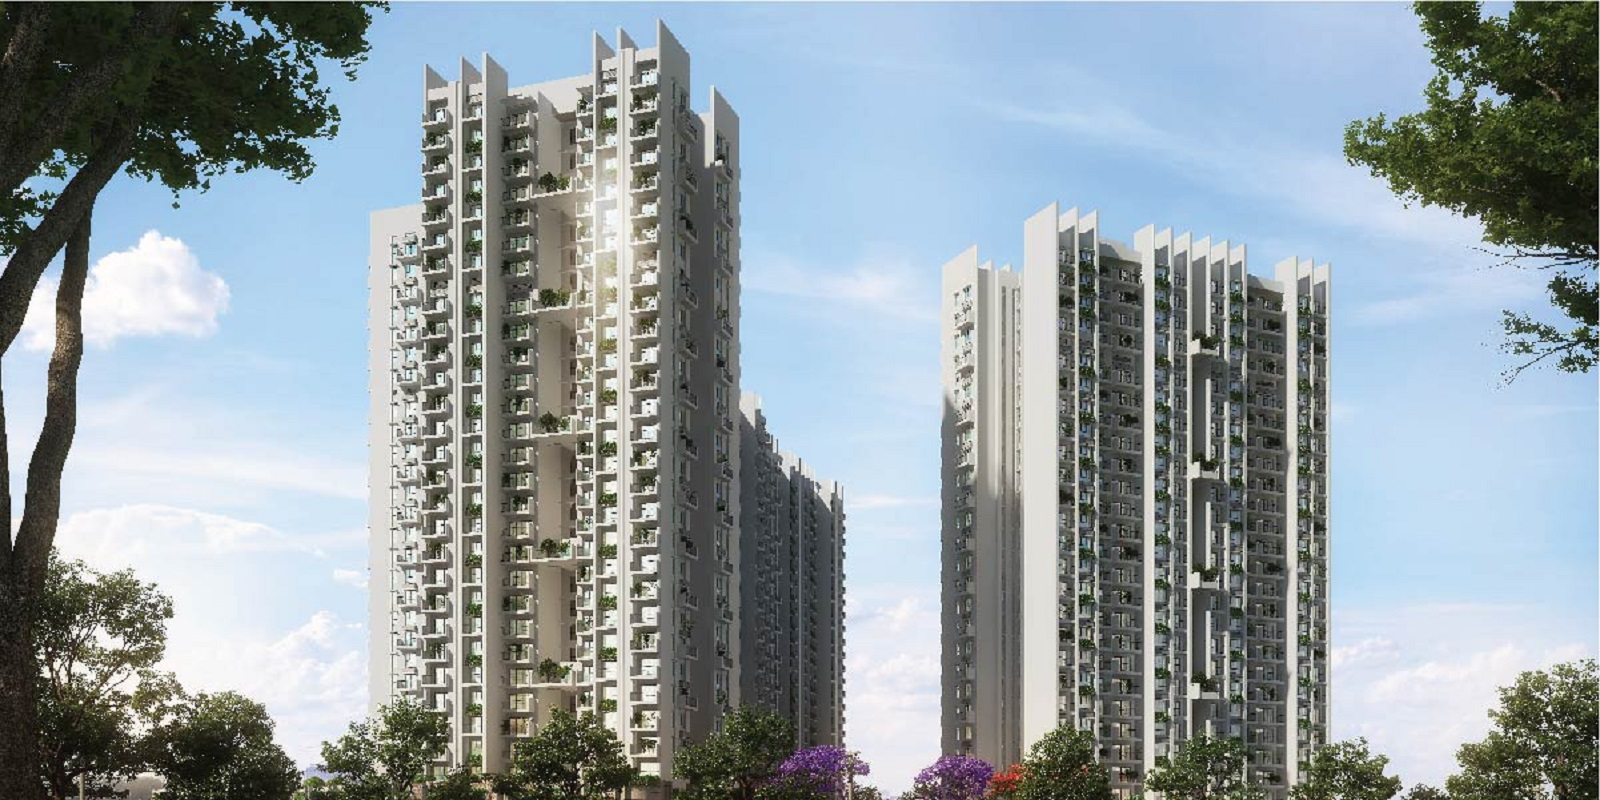 godrej rejuve project large image12